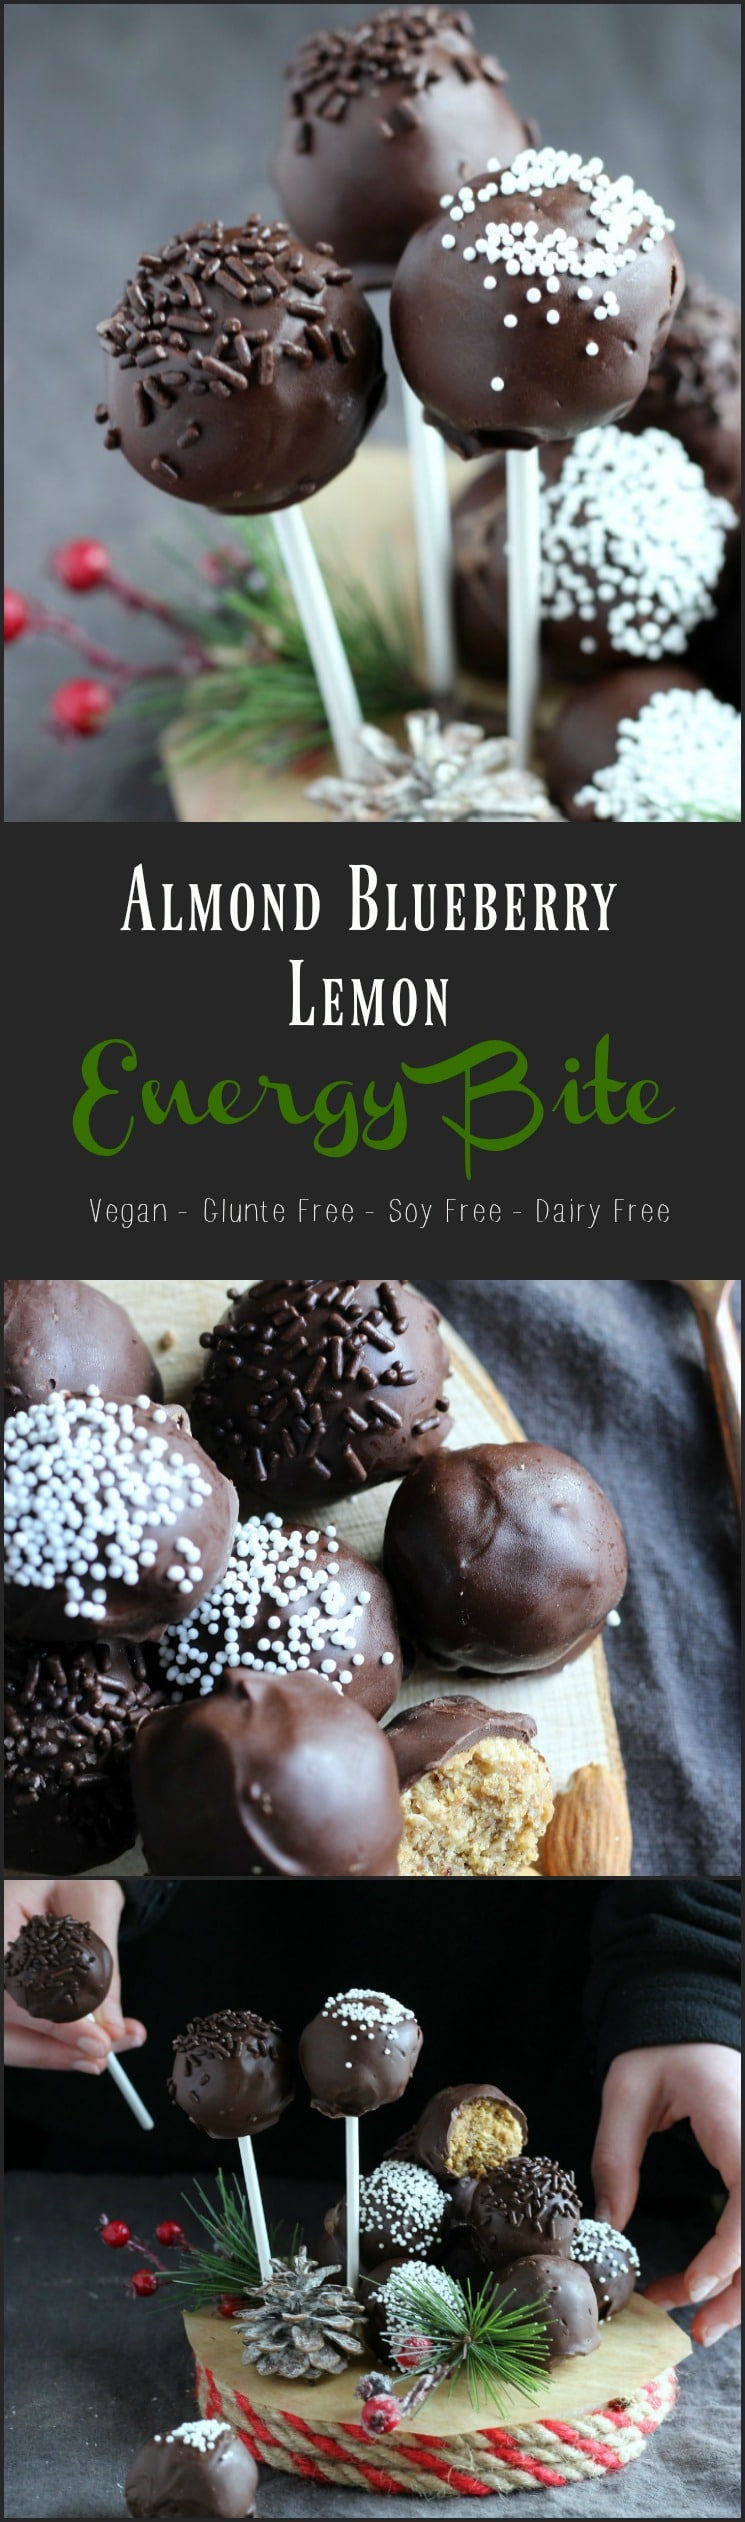 Almond Blueberry Lemon Chocolate Energy Bite the ULTIMATE Healthy Snack | gardeninthekitchen.com